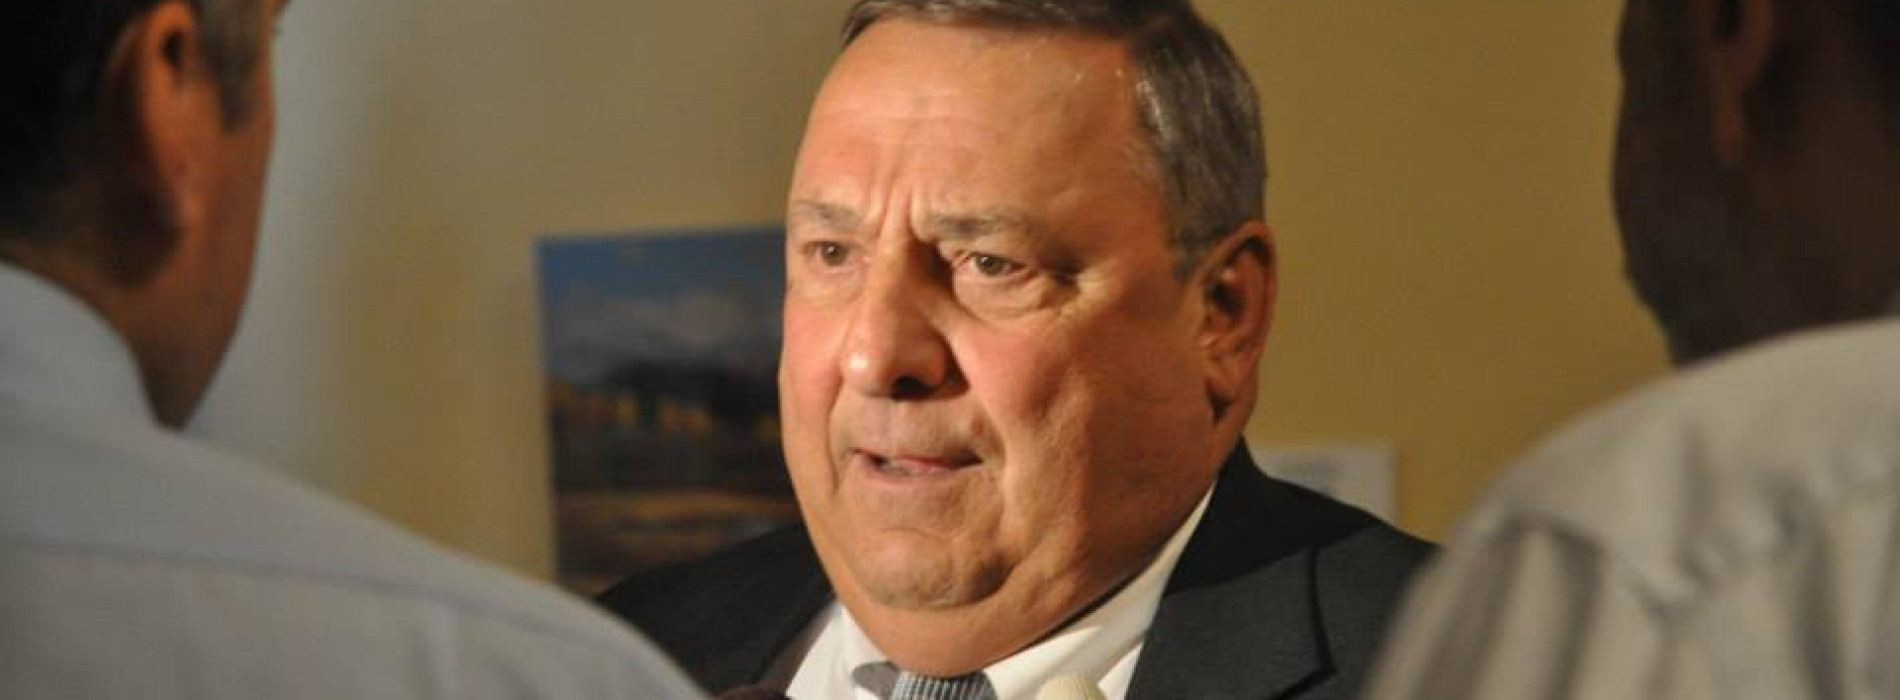 Documents show LePage lied about minimum wage